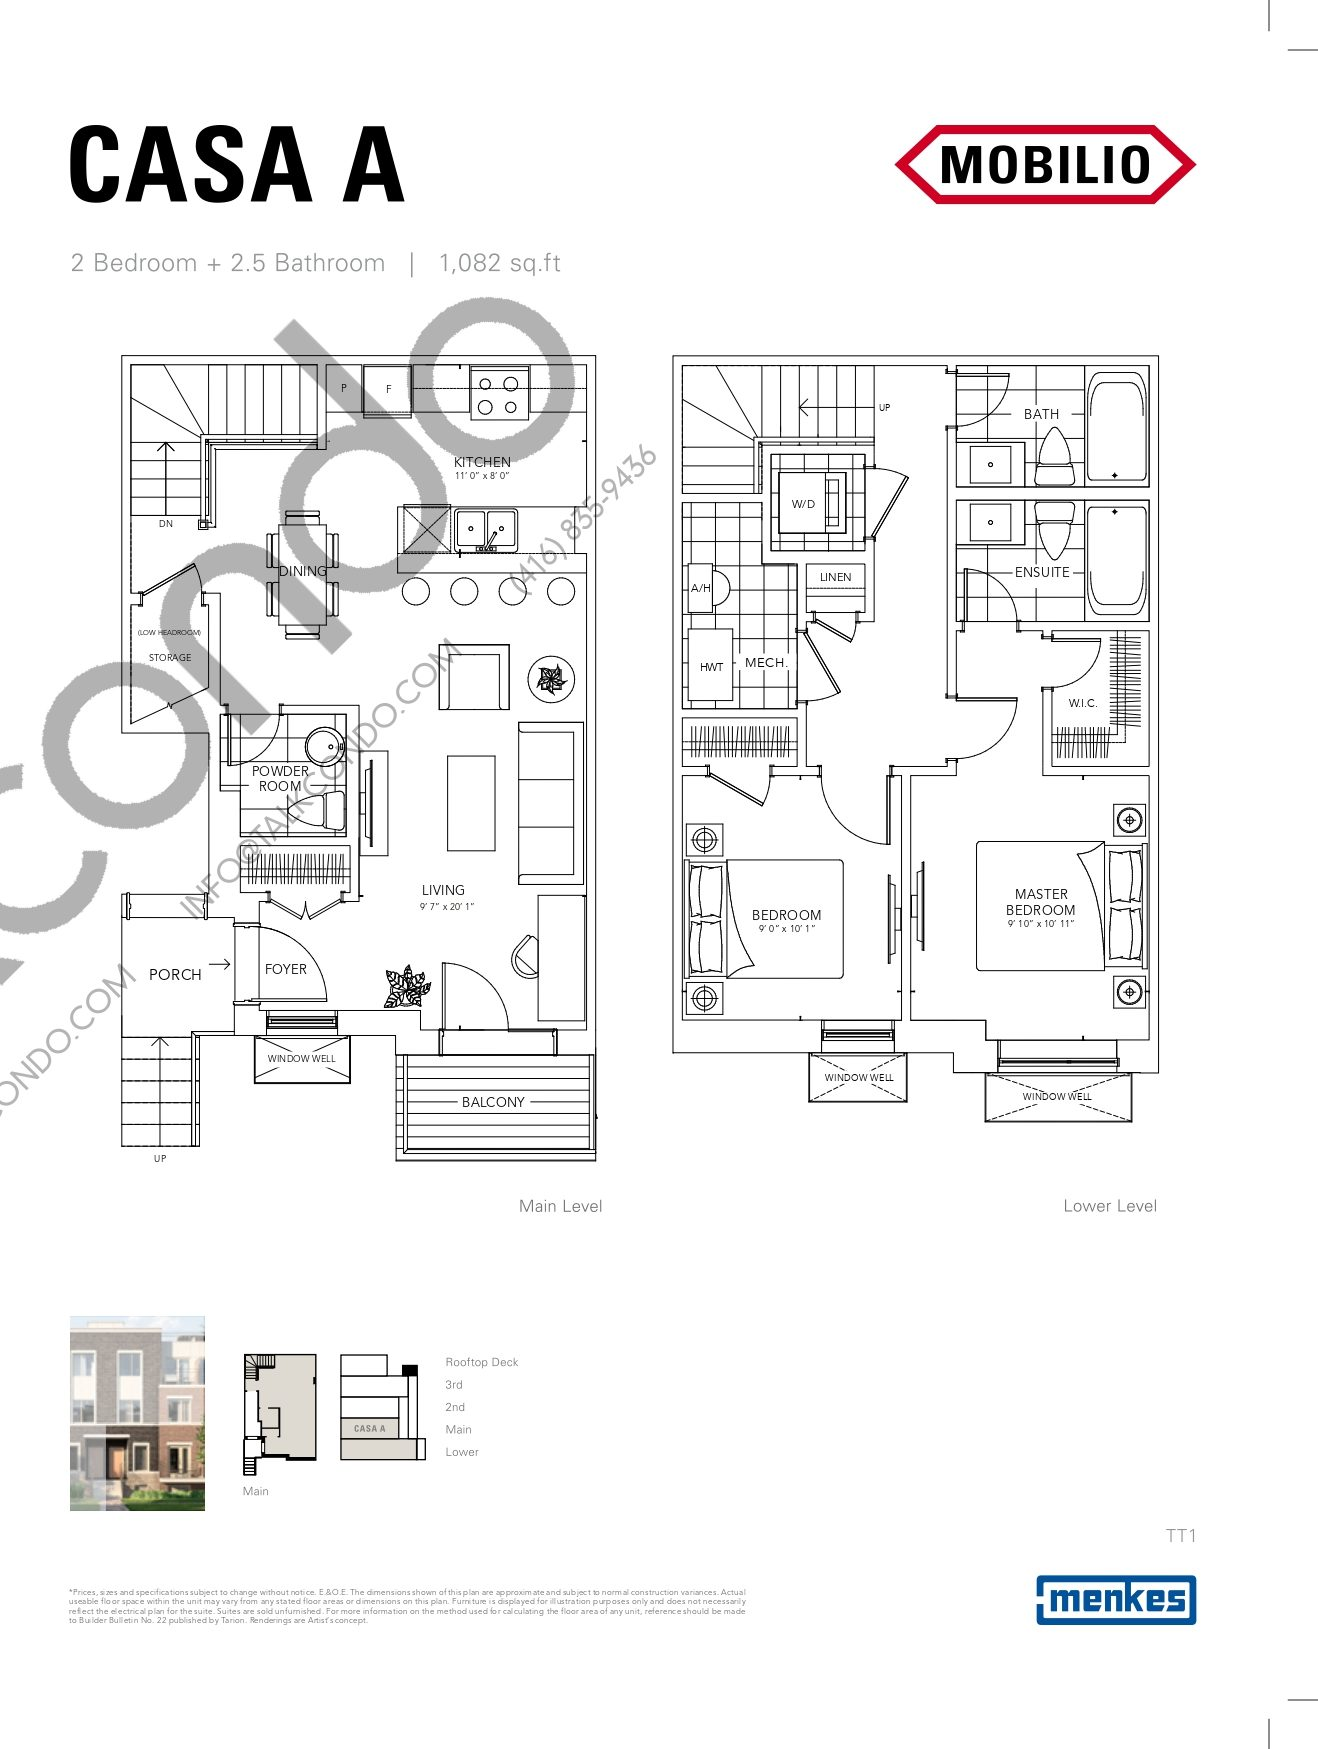 Casa A - Courtyard Collection Floor Plan at Mobilio Townhomes - 1082 sq.ft